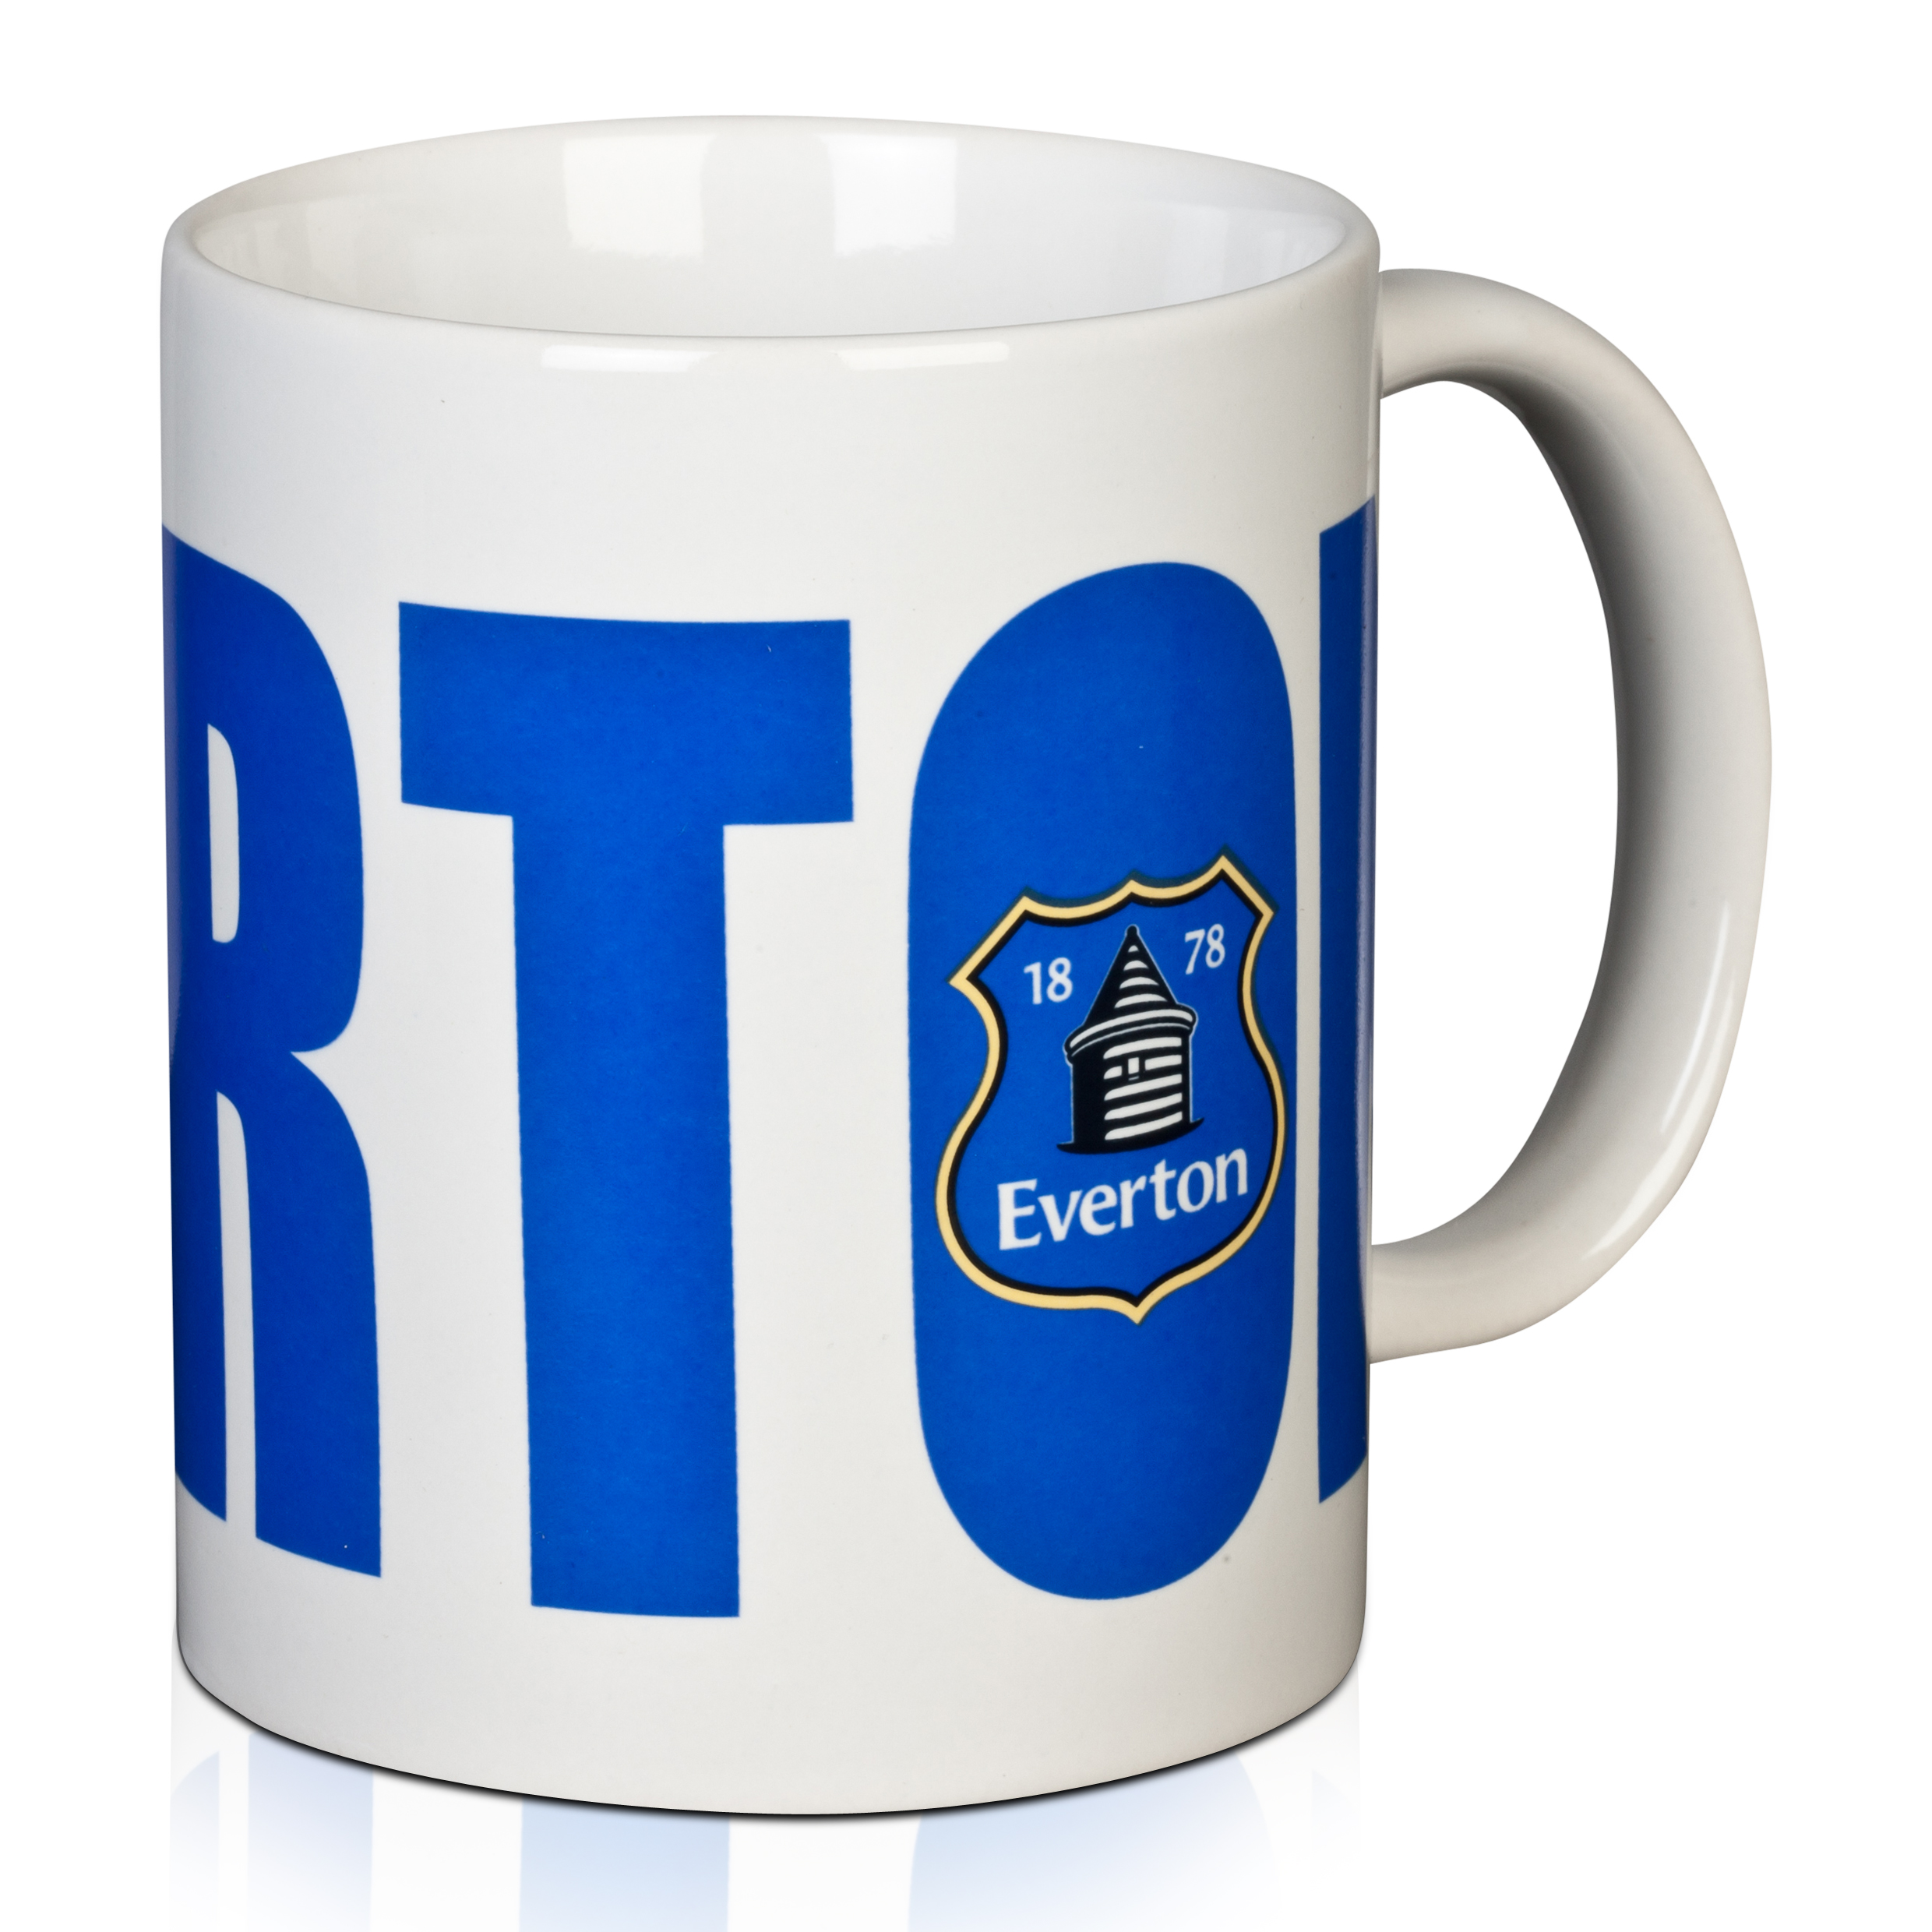 Everton Bold Wordmark Mug 11oz